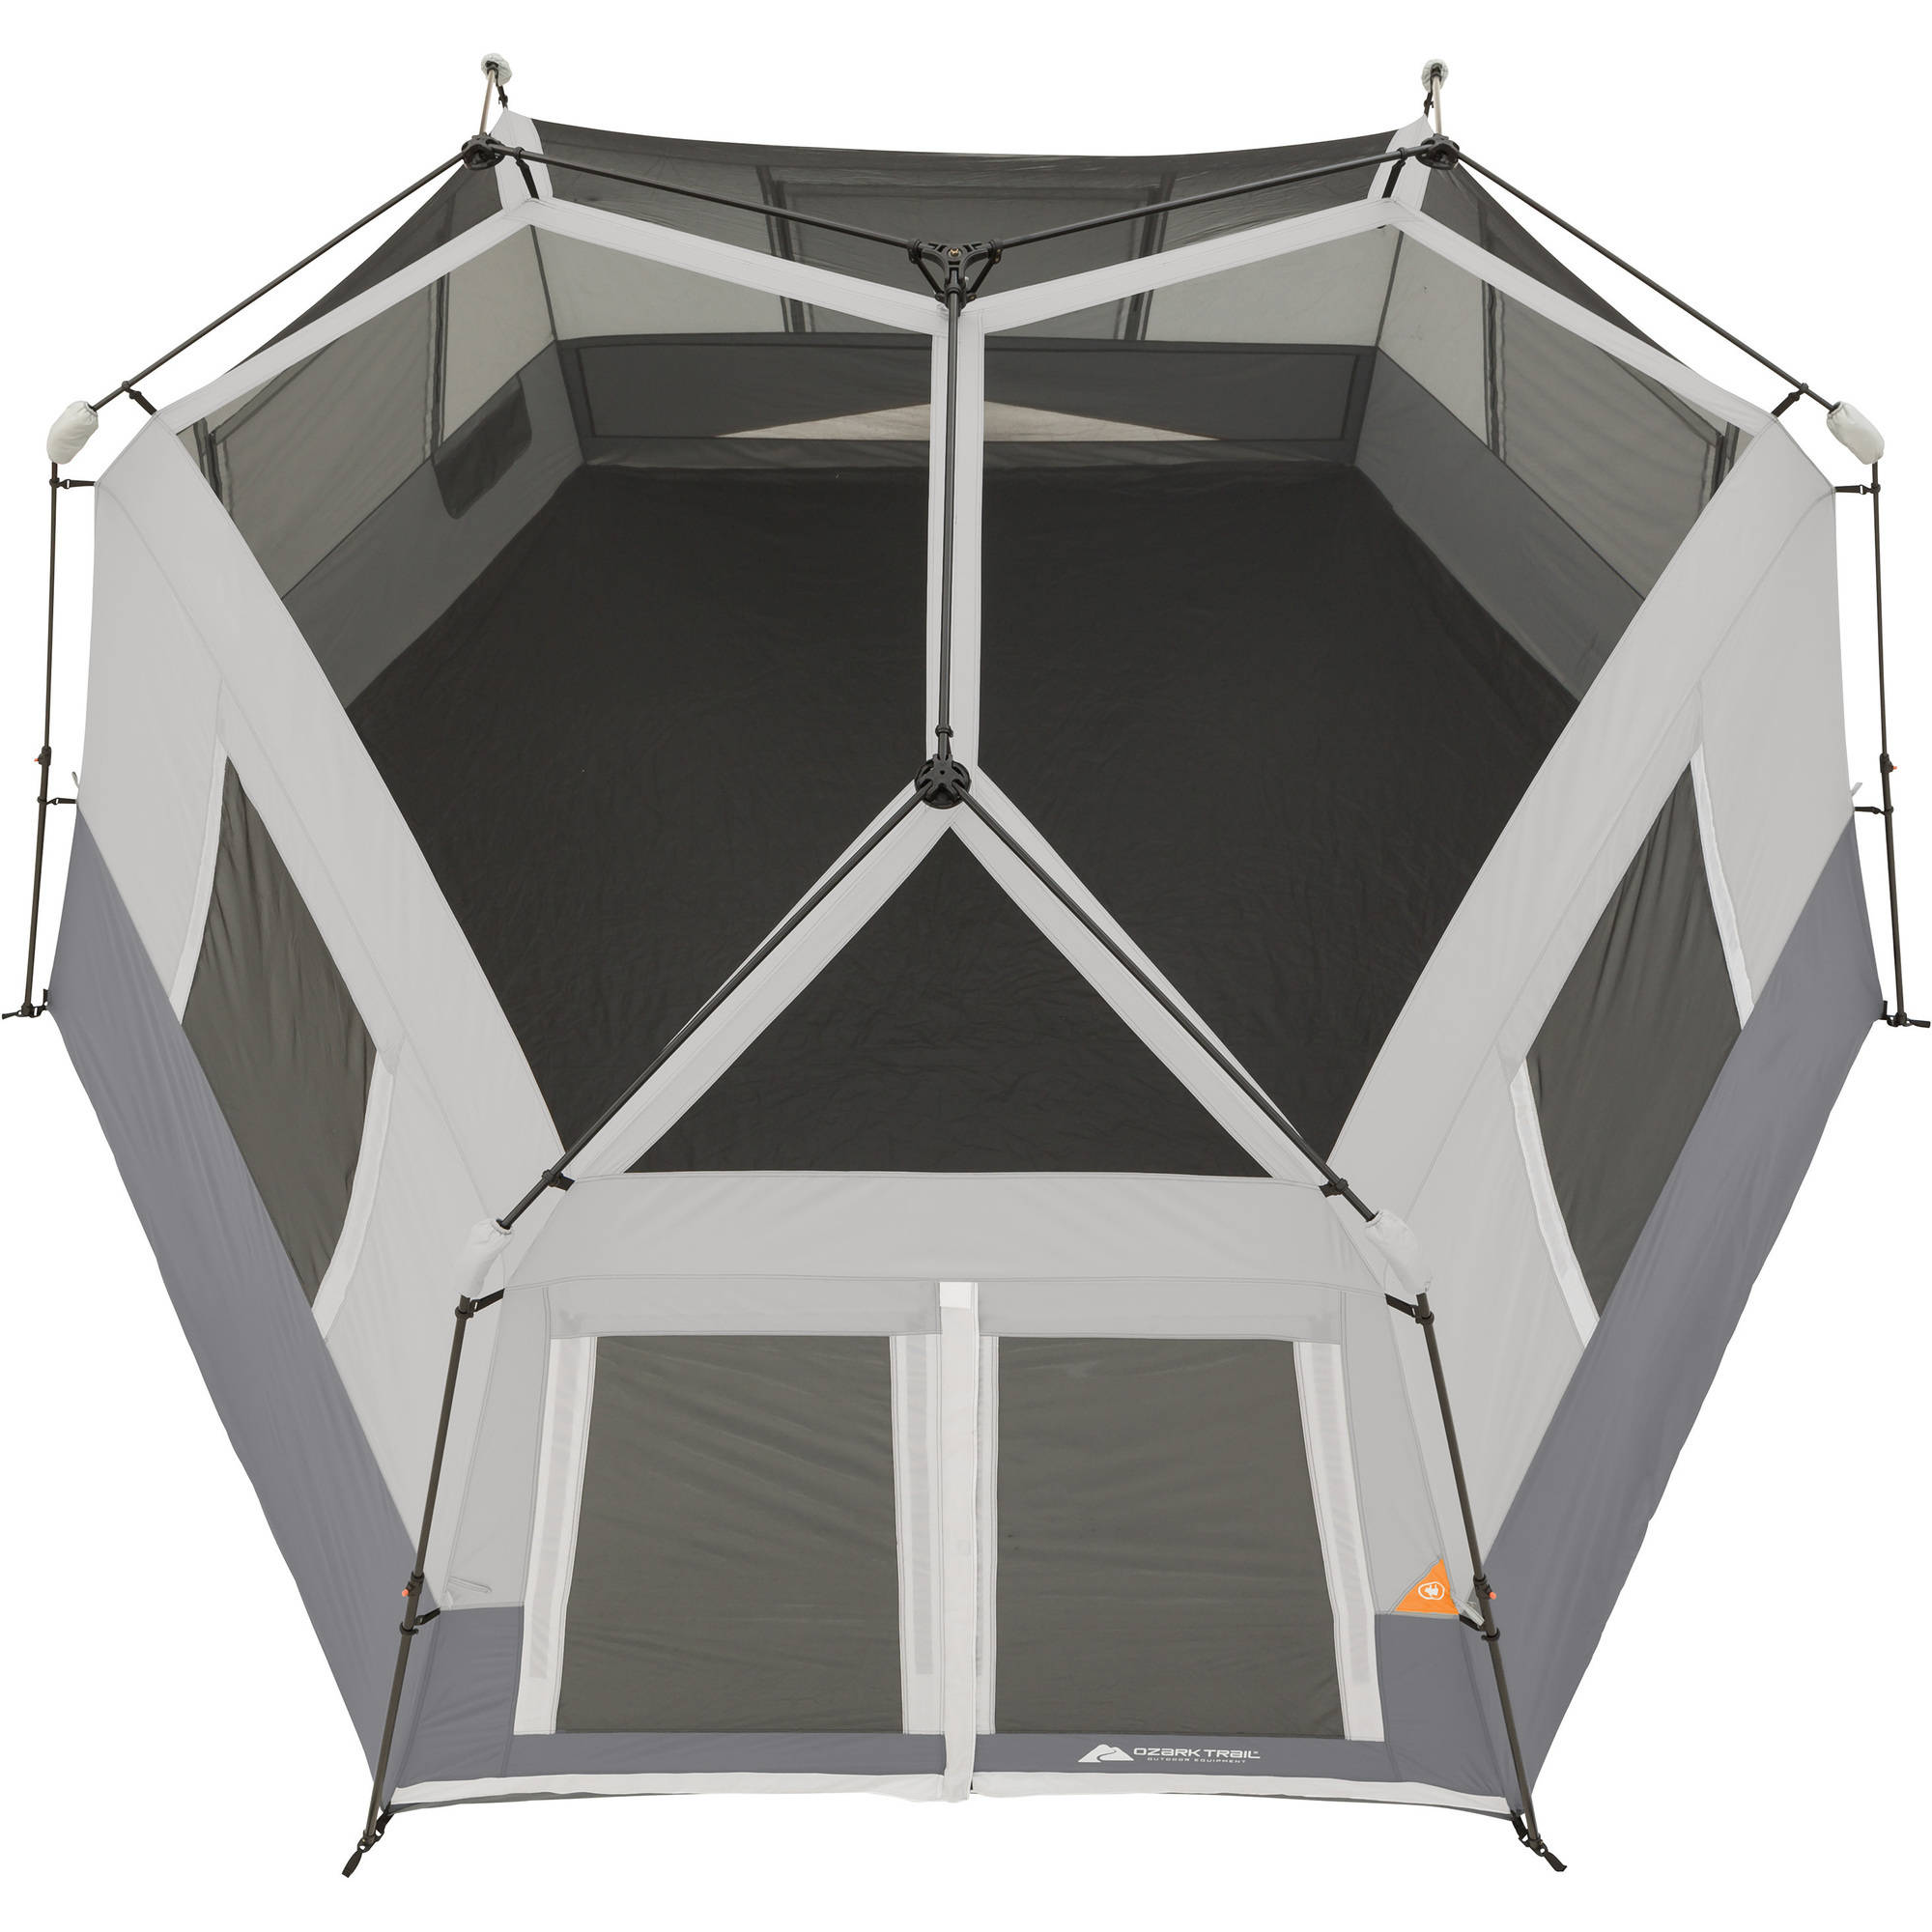 sc 1 st  Walmart & Ozark Trail 8-Person Instant Hexagon Cabin Tent - Walmart.com